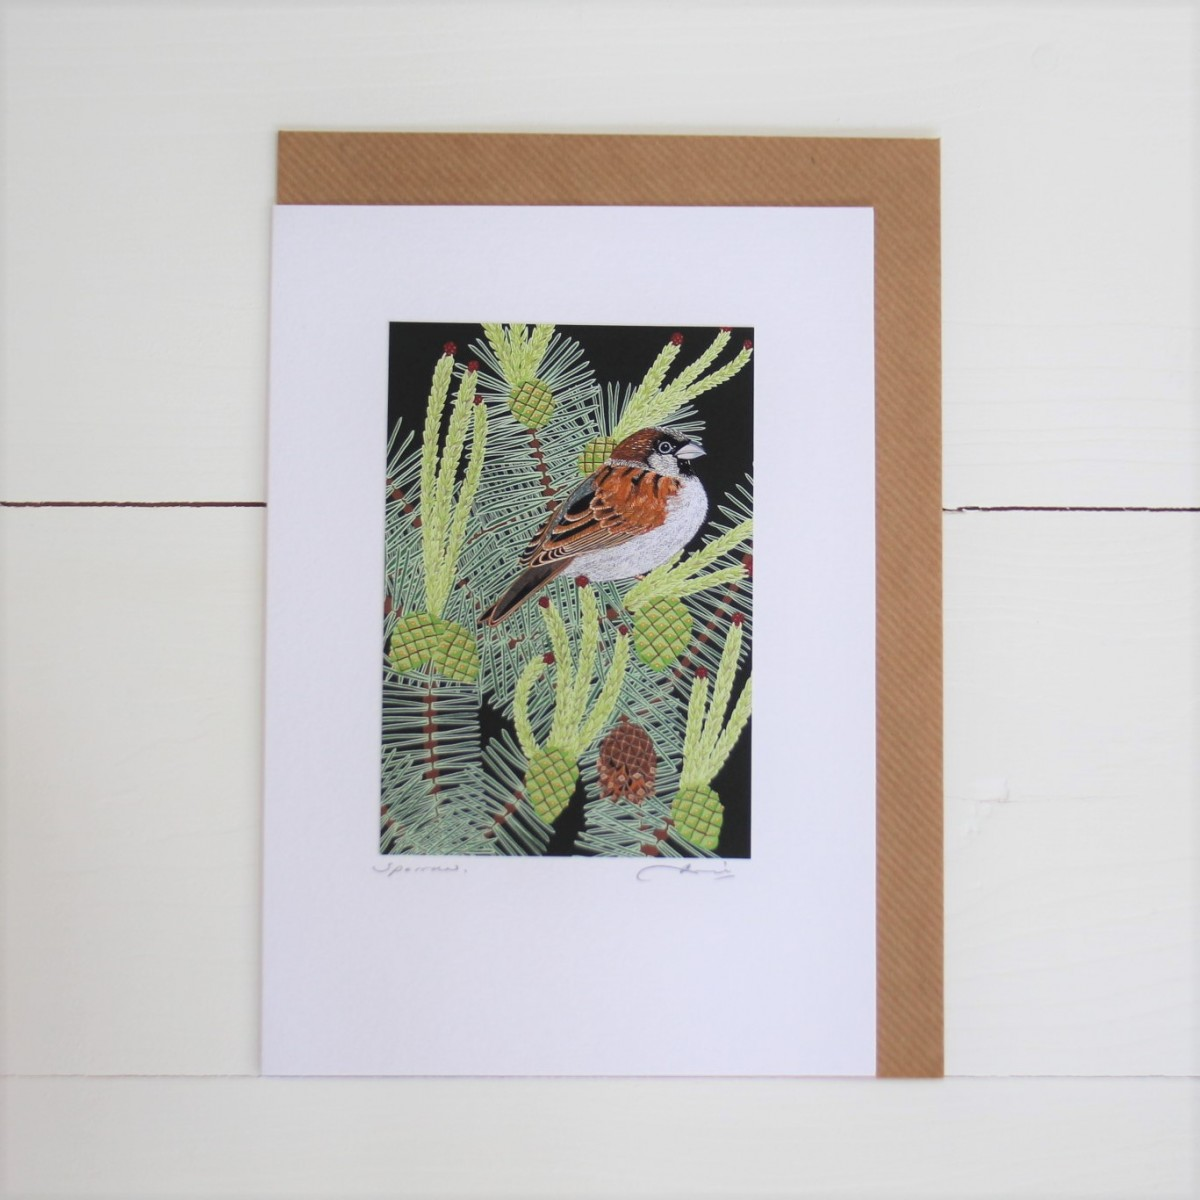 Sparrow Bird Flower Handmade Hand Titled And Signed Greeting Card A5